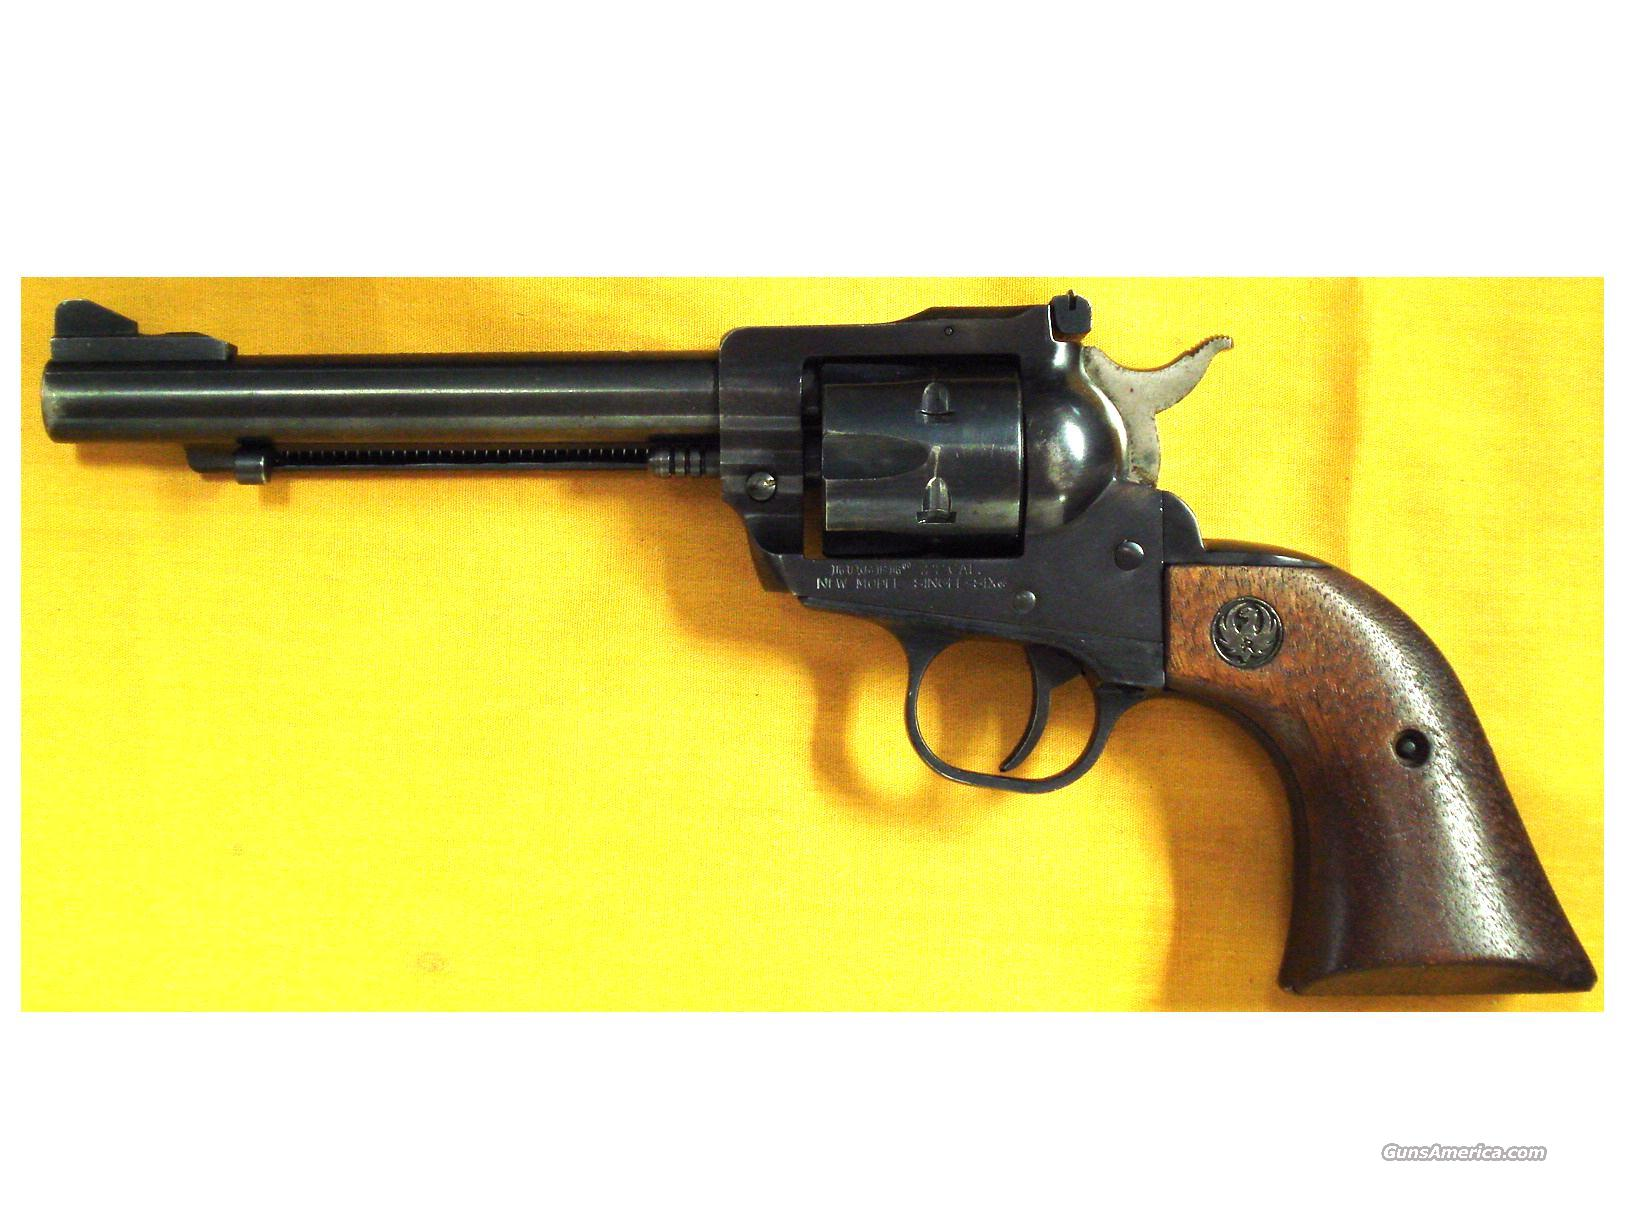 "RUGER SINGLE SIX .22LR 5 1/2"" BARREL  Guns > Pistols > Ruger Single Action Revolvers > Single Six Type"